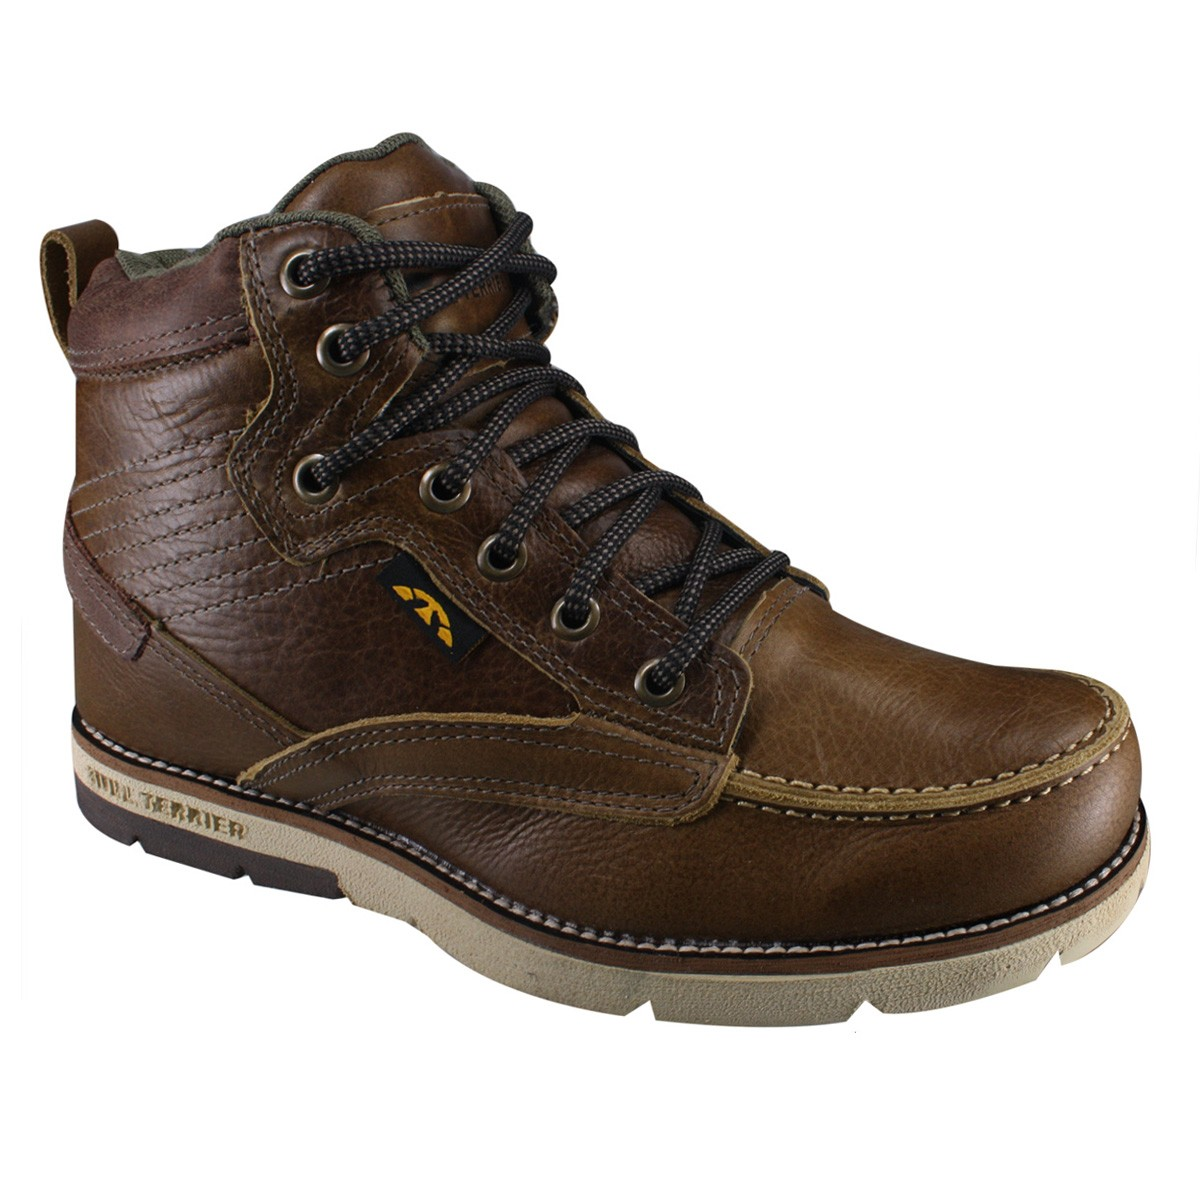 55b5f4373a COURO NATURAL 26% OFF. Bota Masculina Bull Terrier Chicago